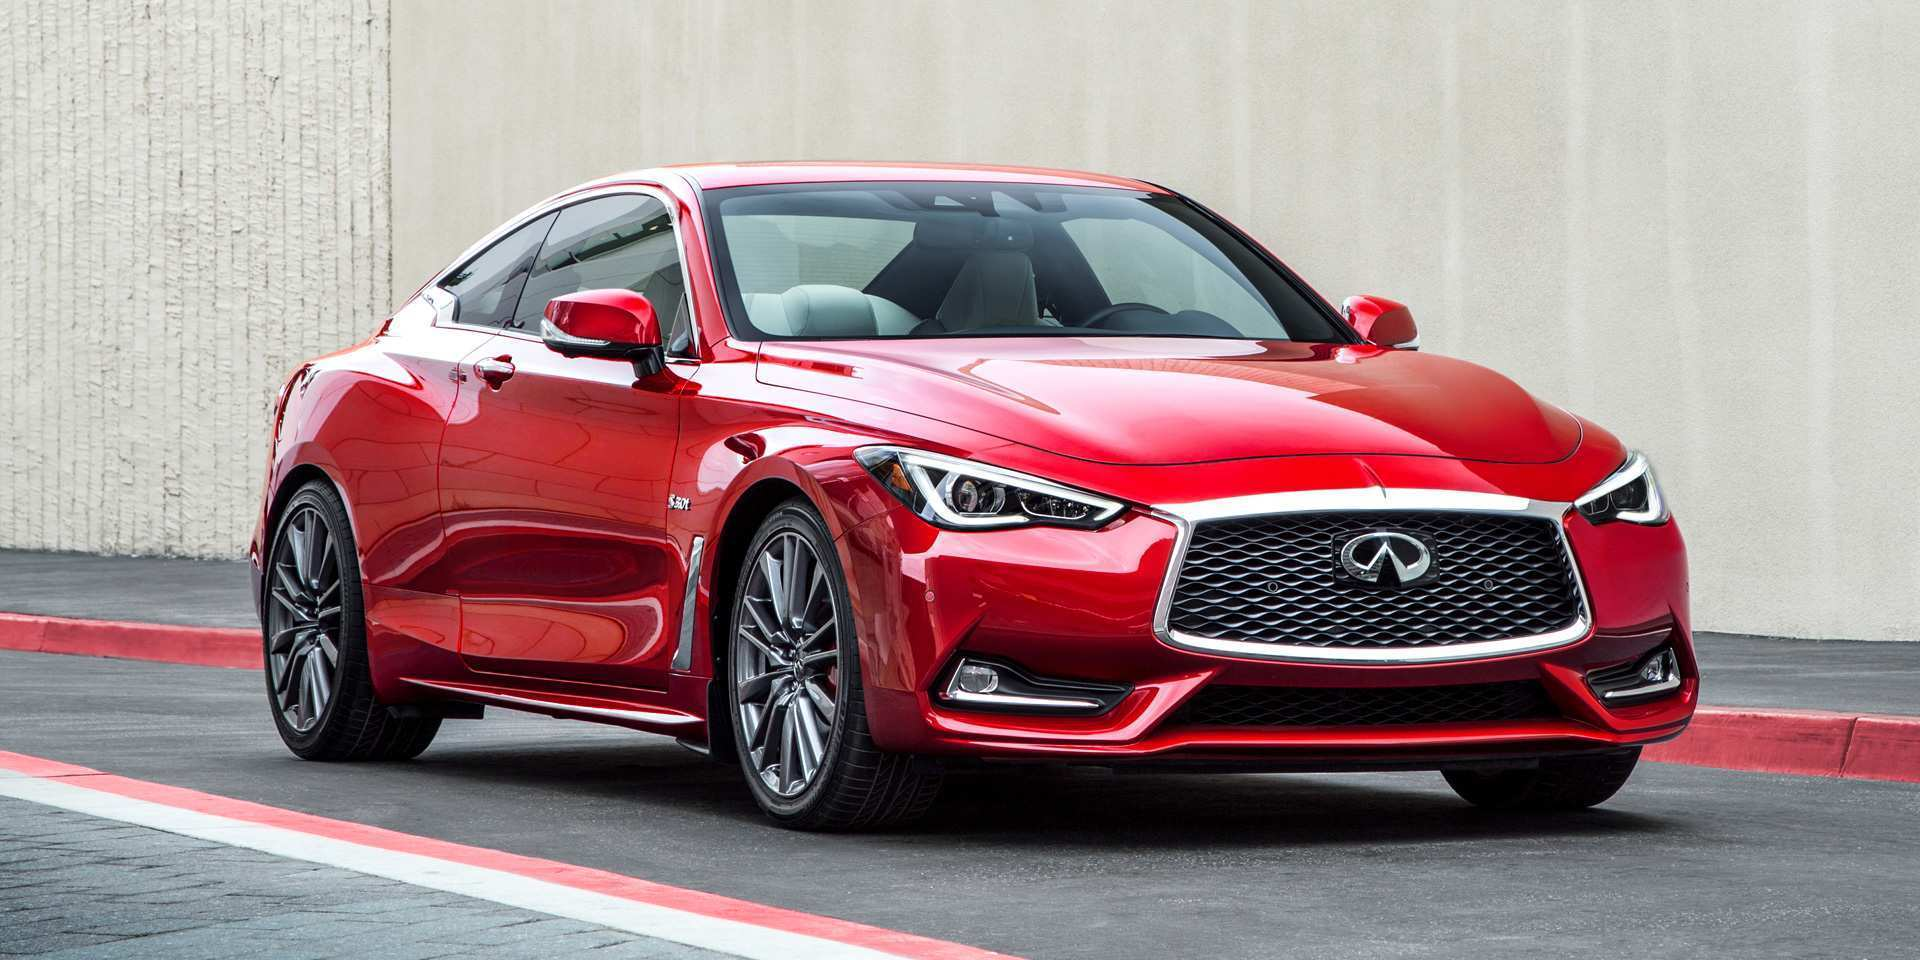 90 All New 2019 Infiniti Q60 Prices